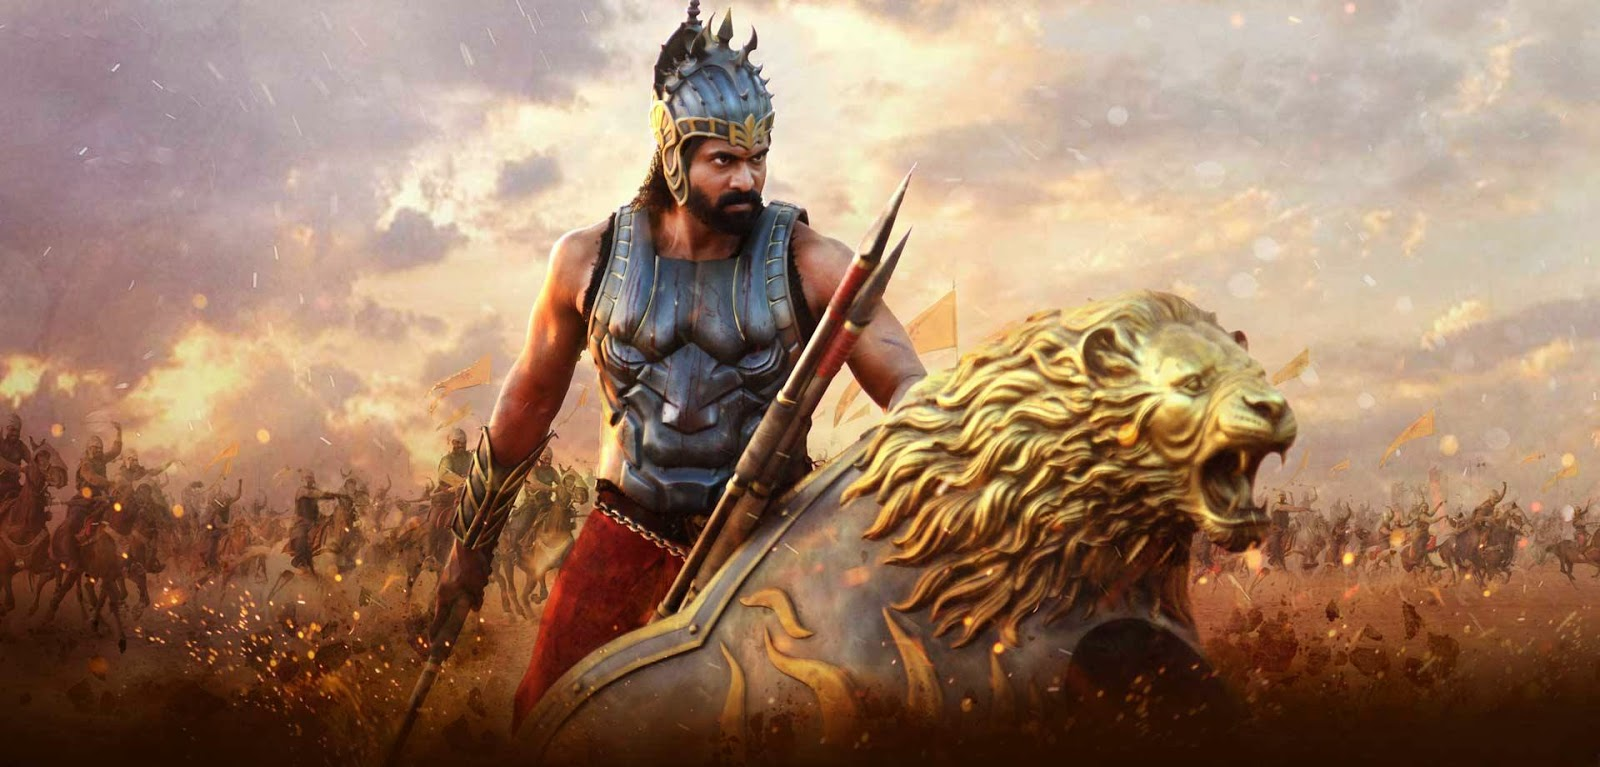 Wallpaper download bahubali - Rana Dagubatti Bahubali Wallpaper